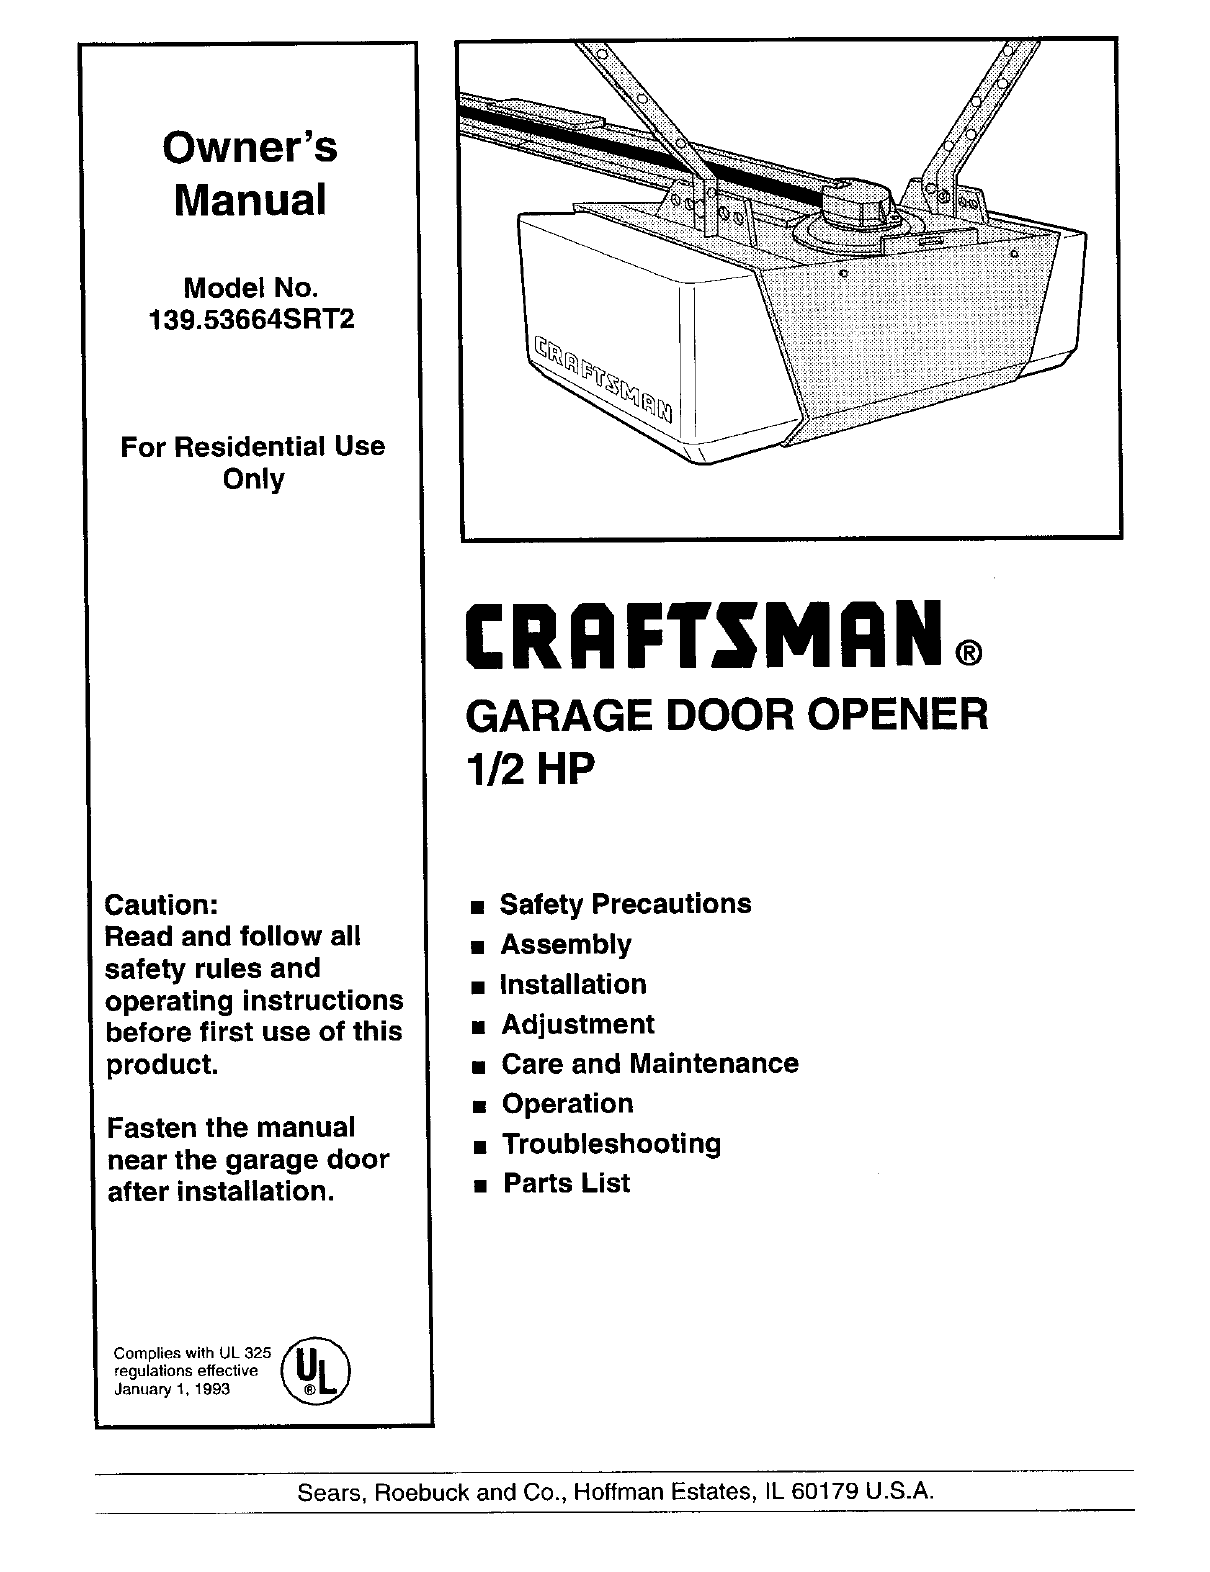 c24ae82a 9898 4ed7 9dbb f6814384f0b4 bg1 craftsman garage door opener 139 53664srt2 user guide craftsman 1 2 hp garage door opener wiring diagram at gsmx.co